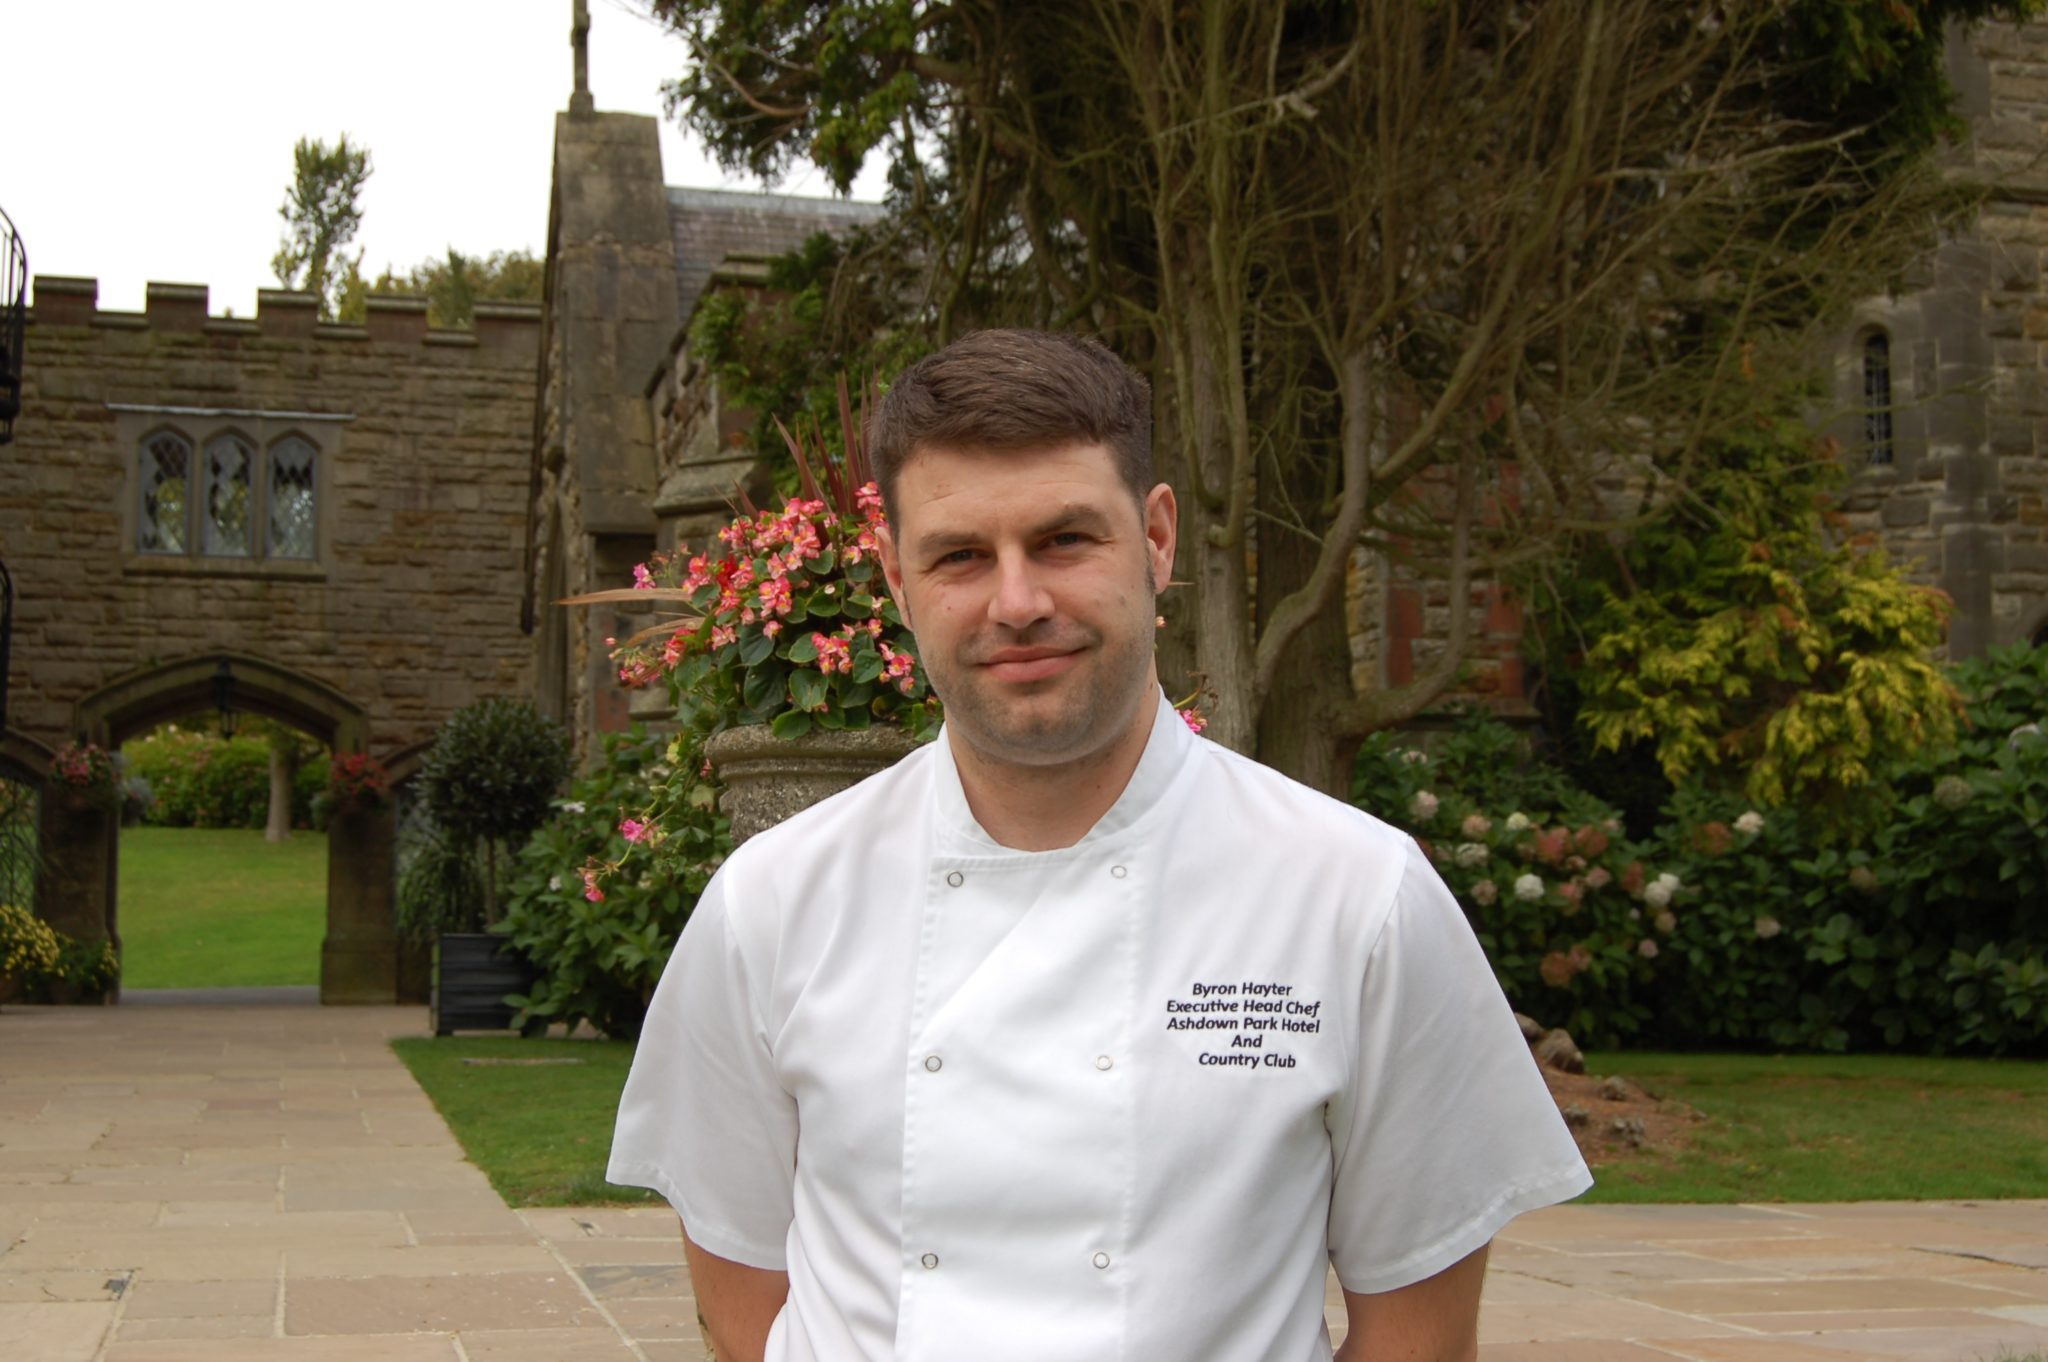 Ashdown chef